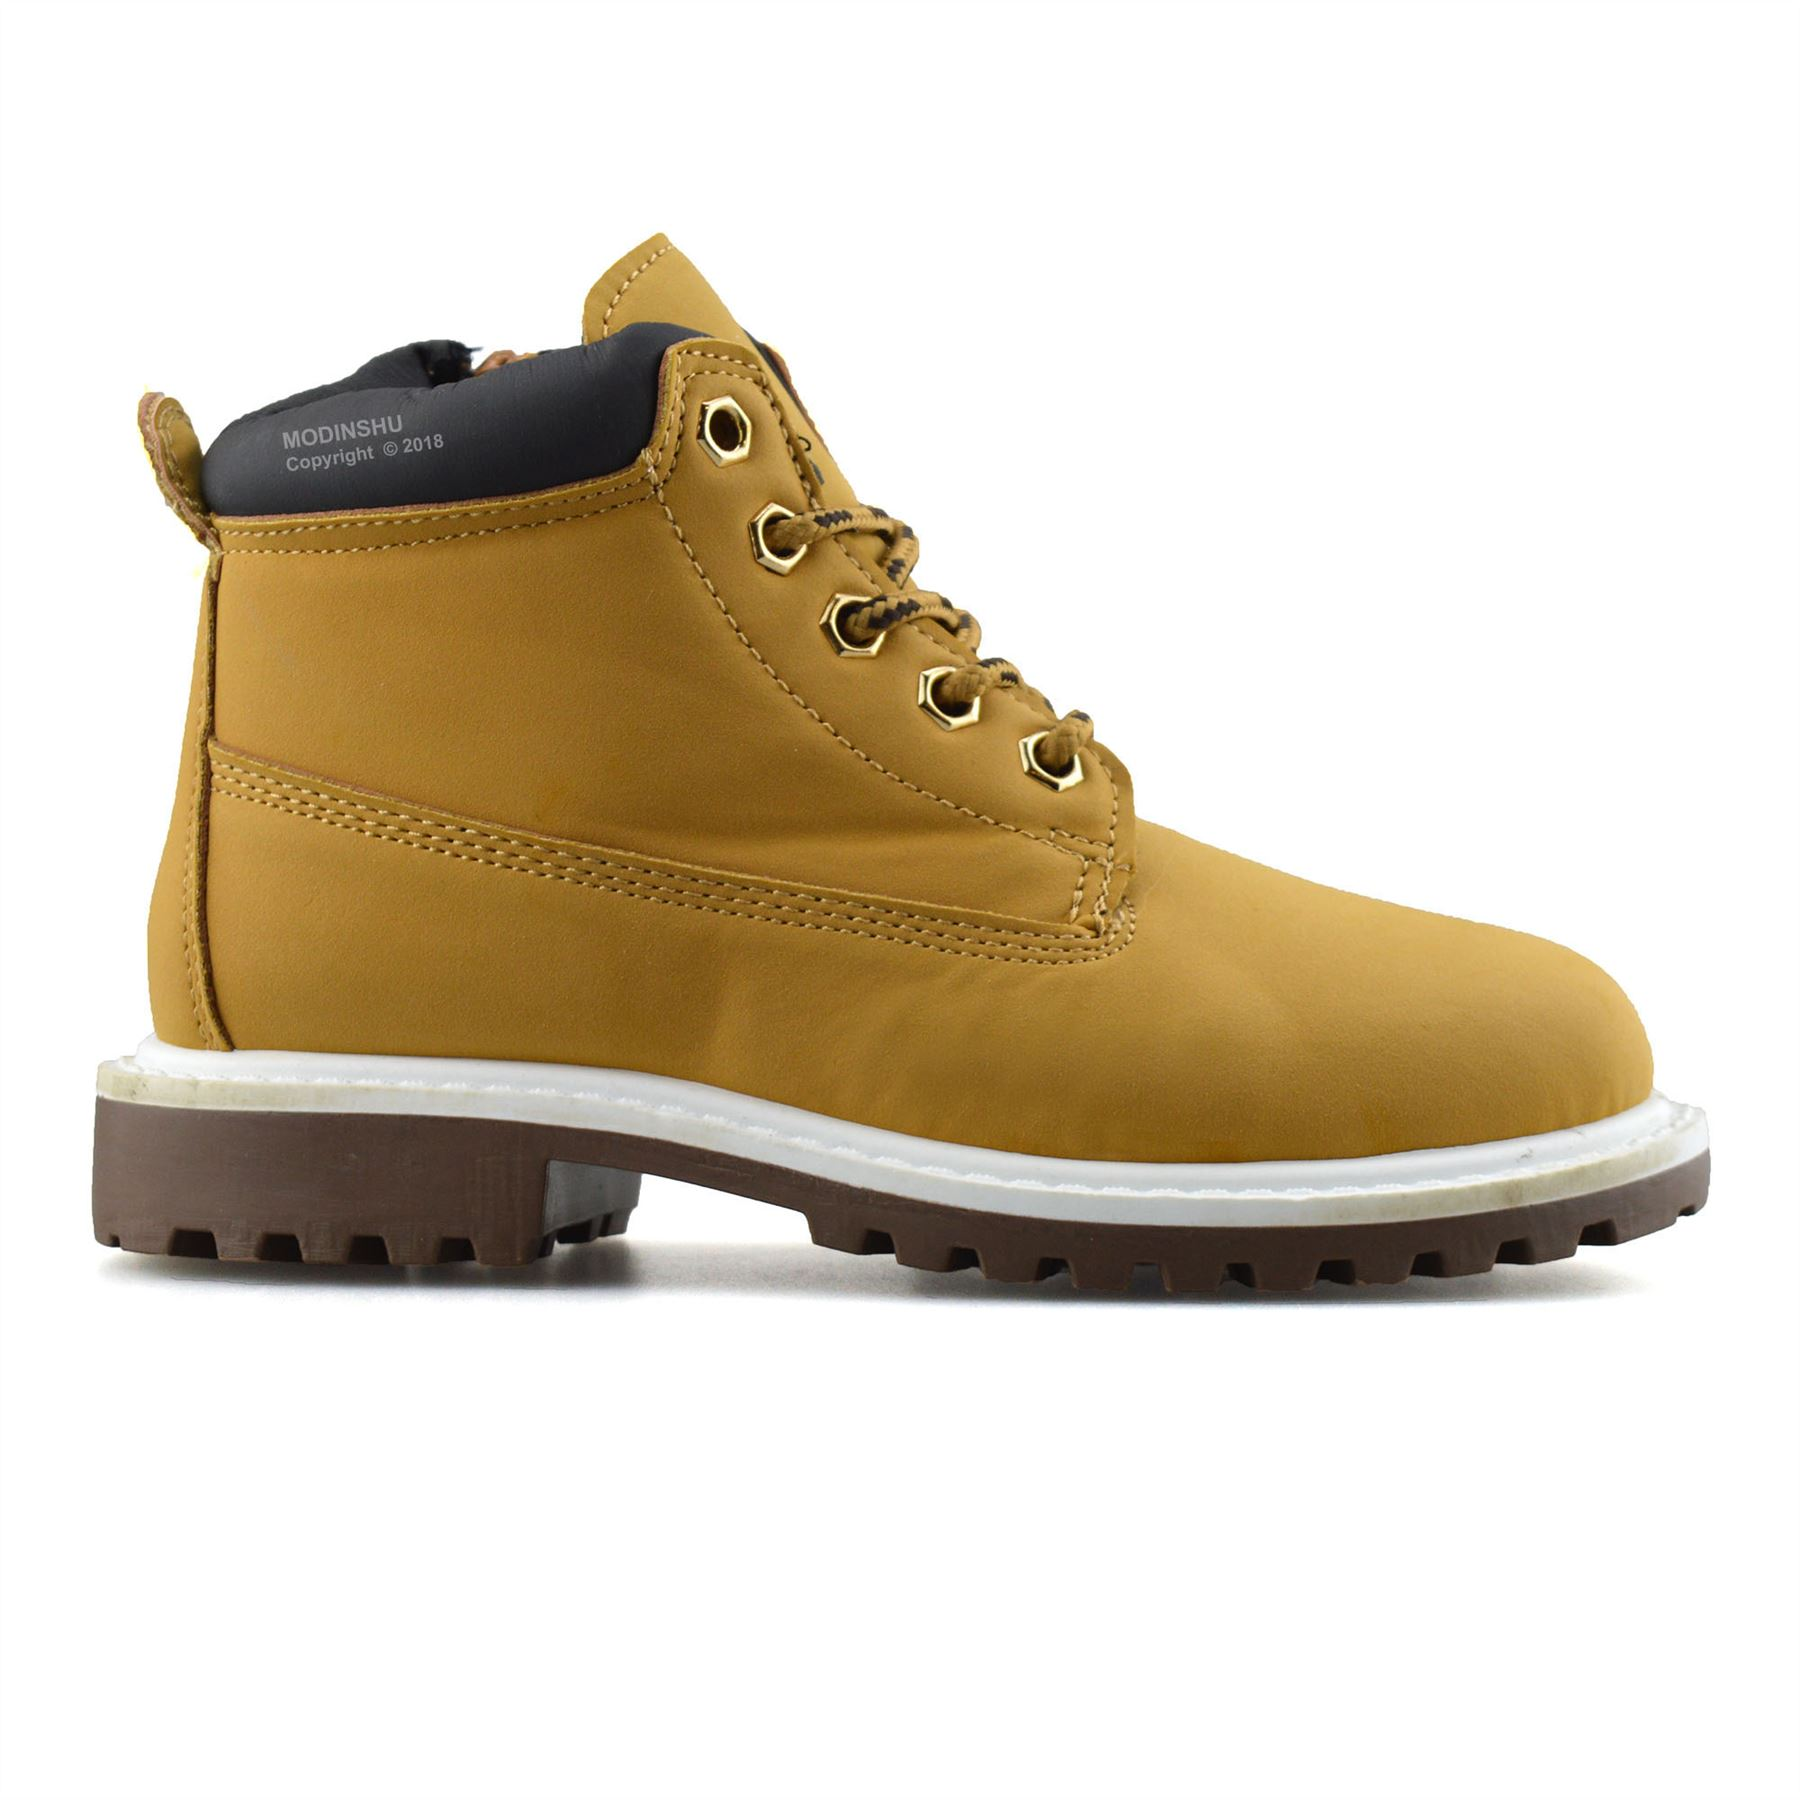 Boys-Kids-New-Casual-Zip-Lace-Up-Winter-Walking-Ankle-Boots-Trainers-Shoes-Size thumbnail 19